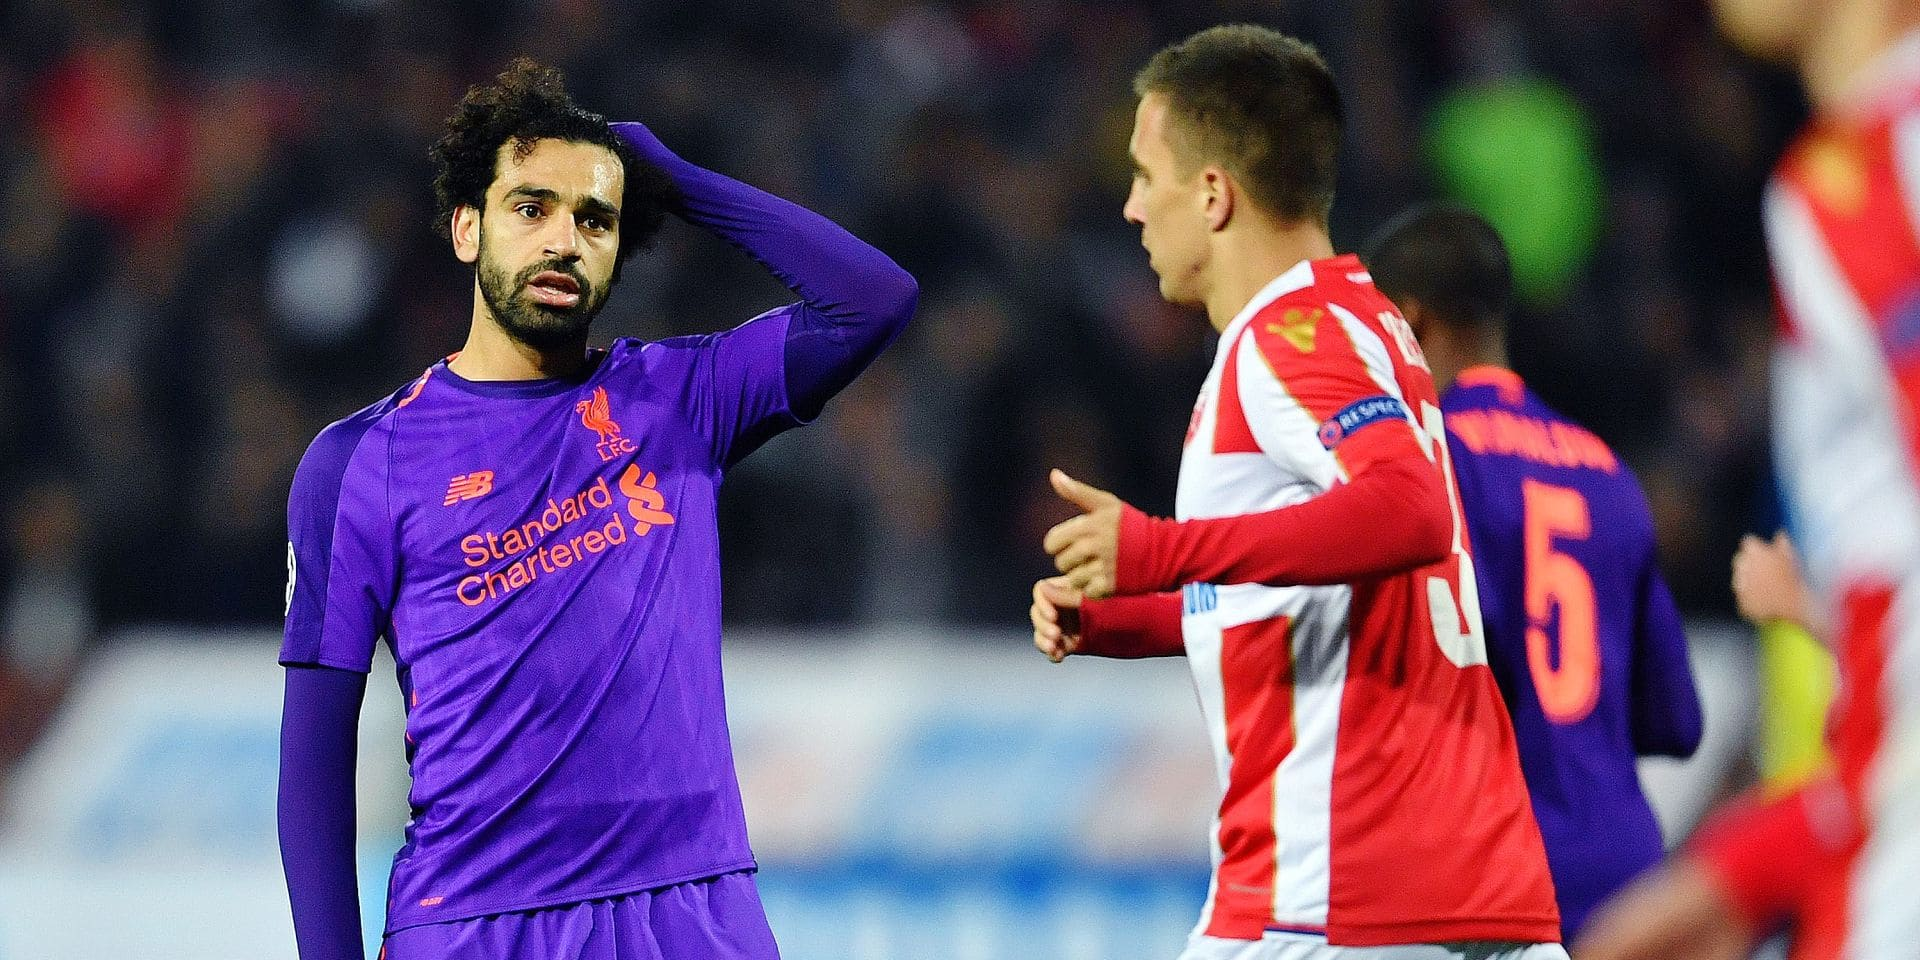 Liverpool's Egyptian forward Mohamed Salah (L) reacts during the UEFA Champions League Group C second-leg football match between Red Star Belgrade and Liverpool FC at the Rajko Mitic Stadium in Belgrade on November 6, 2018. (Photo by Andrej ISAKOVIC / AFP)